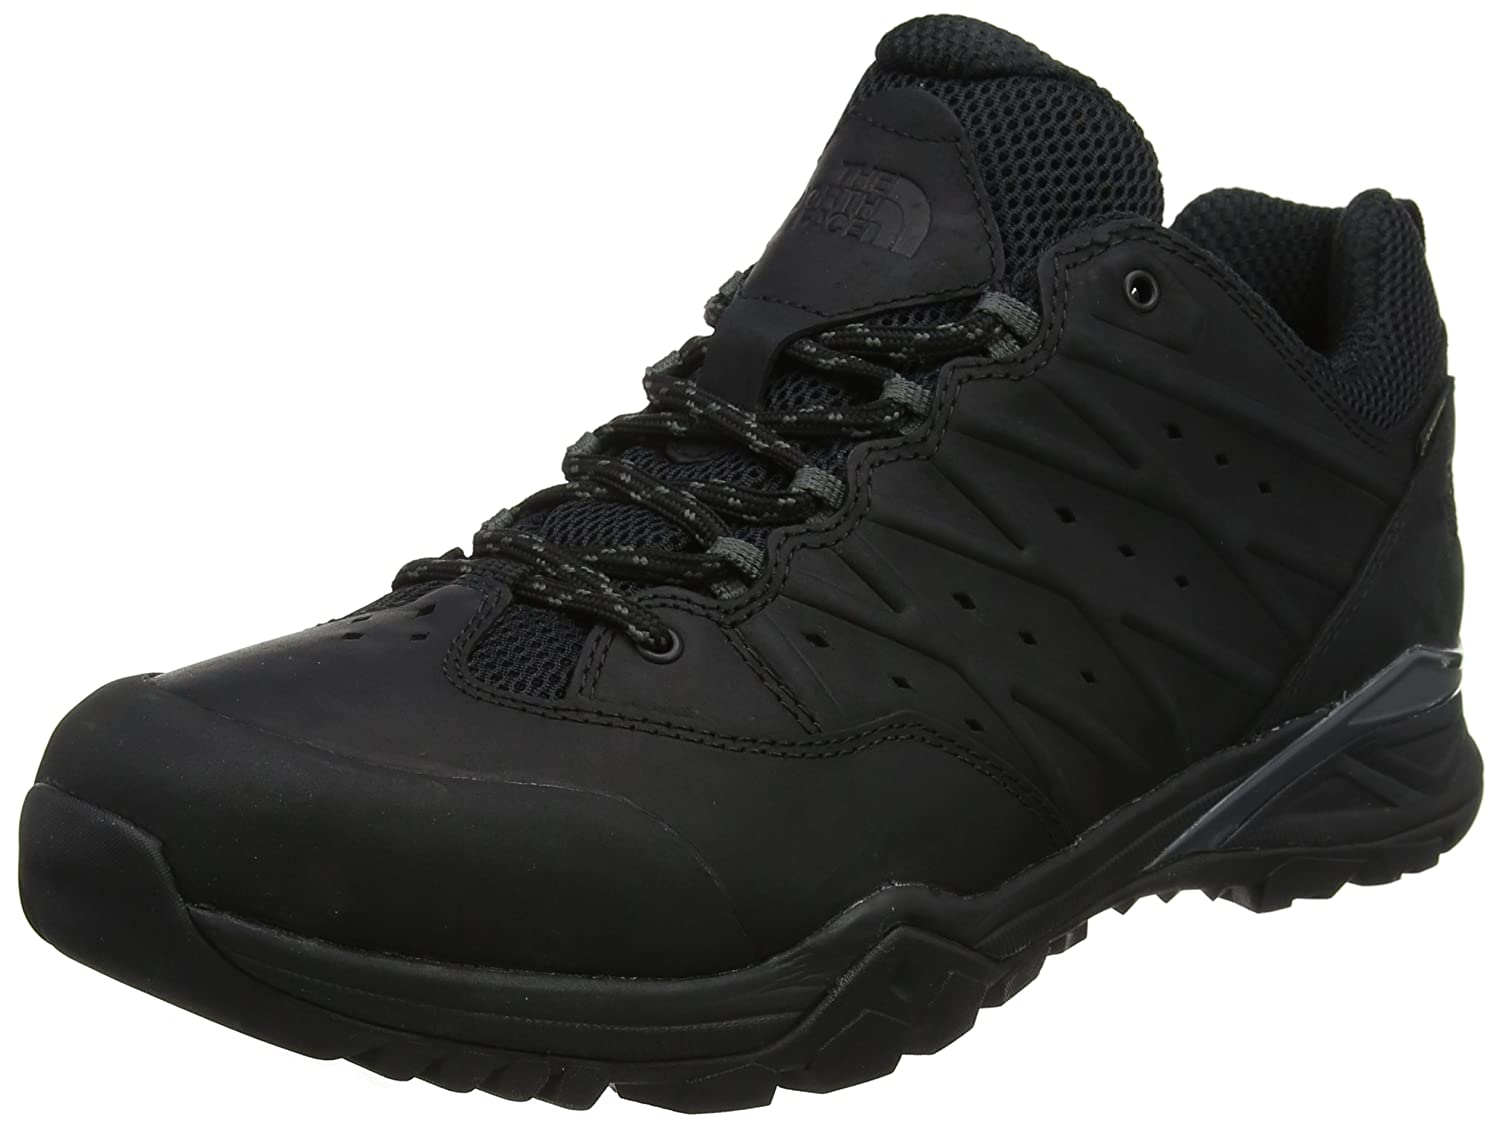 The North Face Hedgehog Hike II GTX, Zapatillas de Senderismo para Hombre